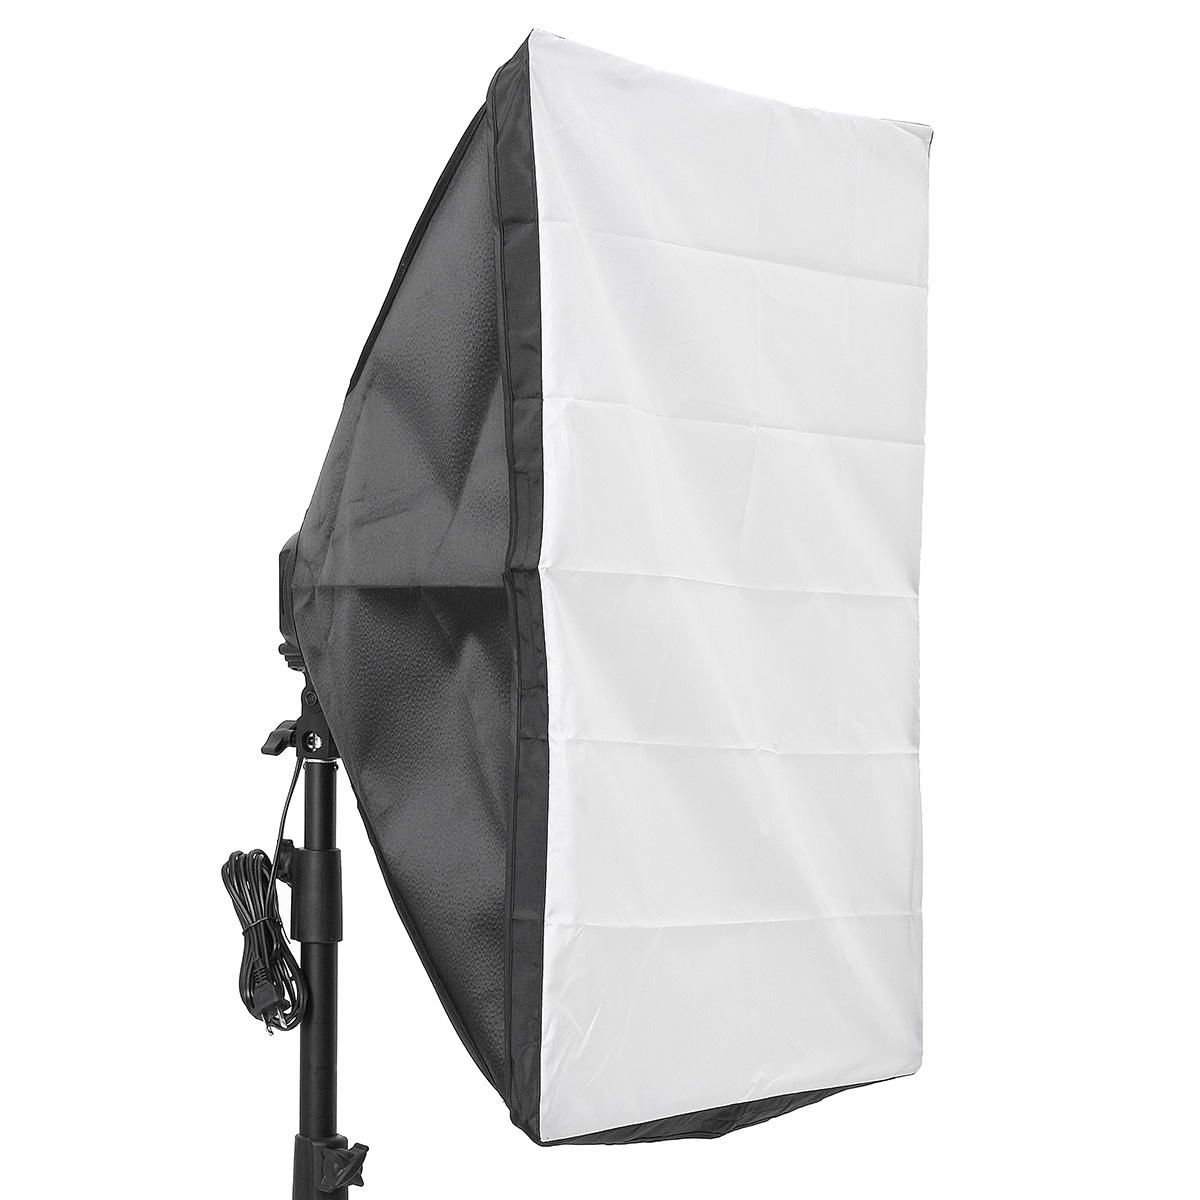 Photo Video Studio Lighting 50x70cm Softbox Light4 Socket E27 Lamp Holder Kit In 2020 Softbox Studio Lighting Lamp Holder